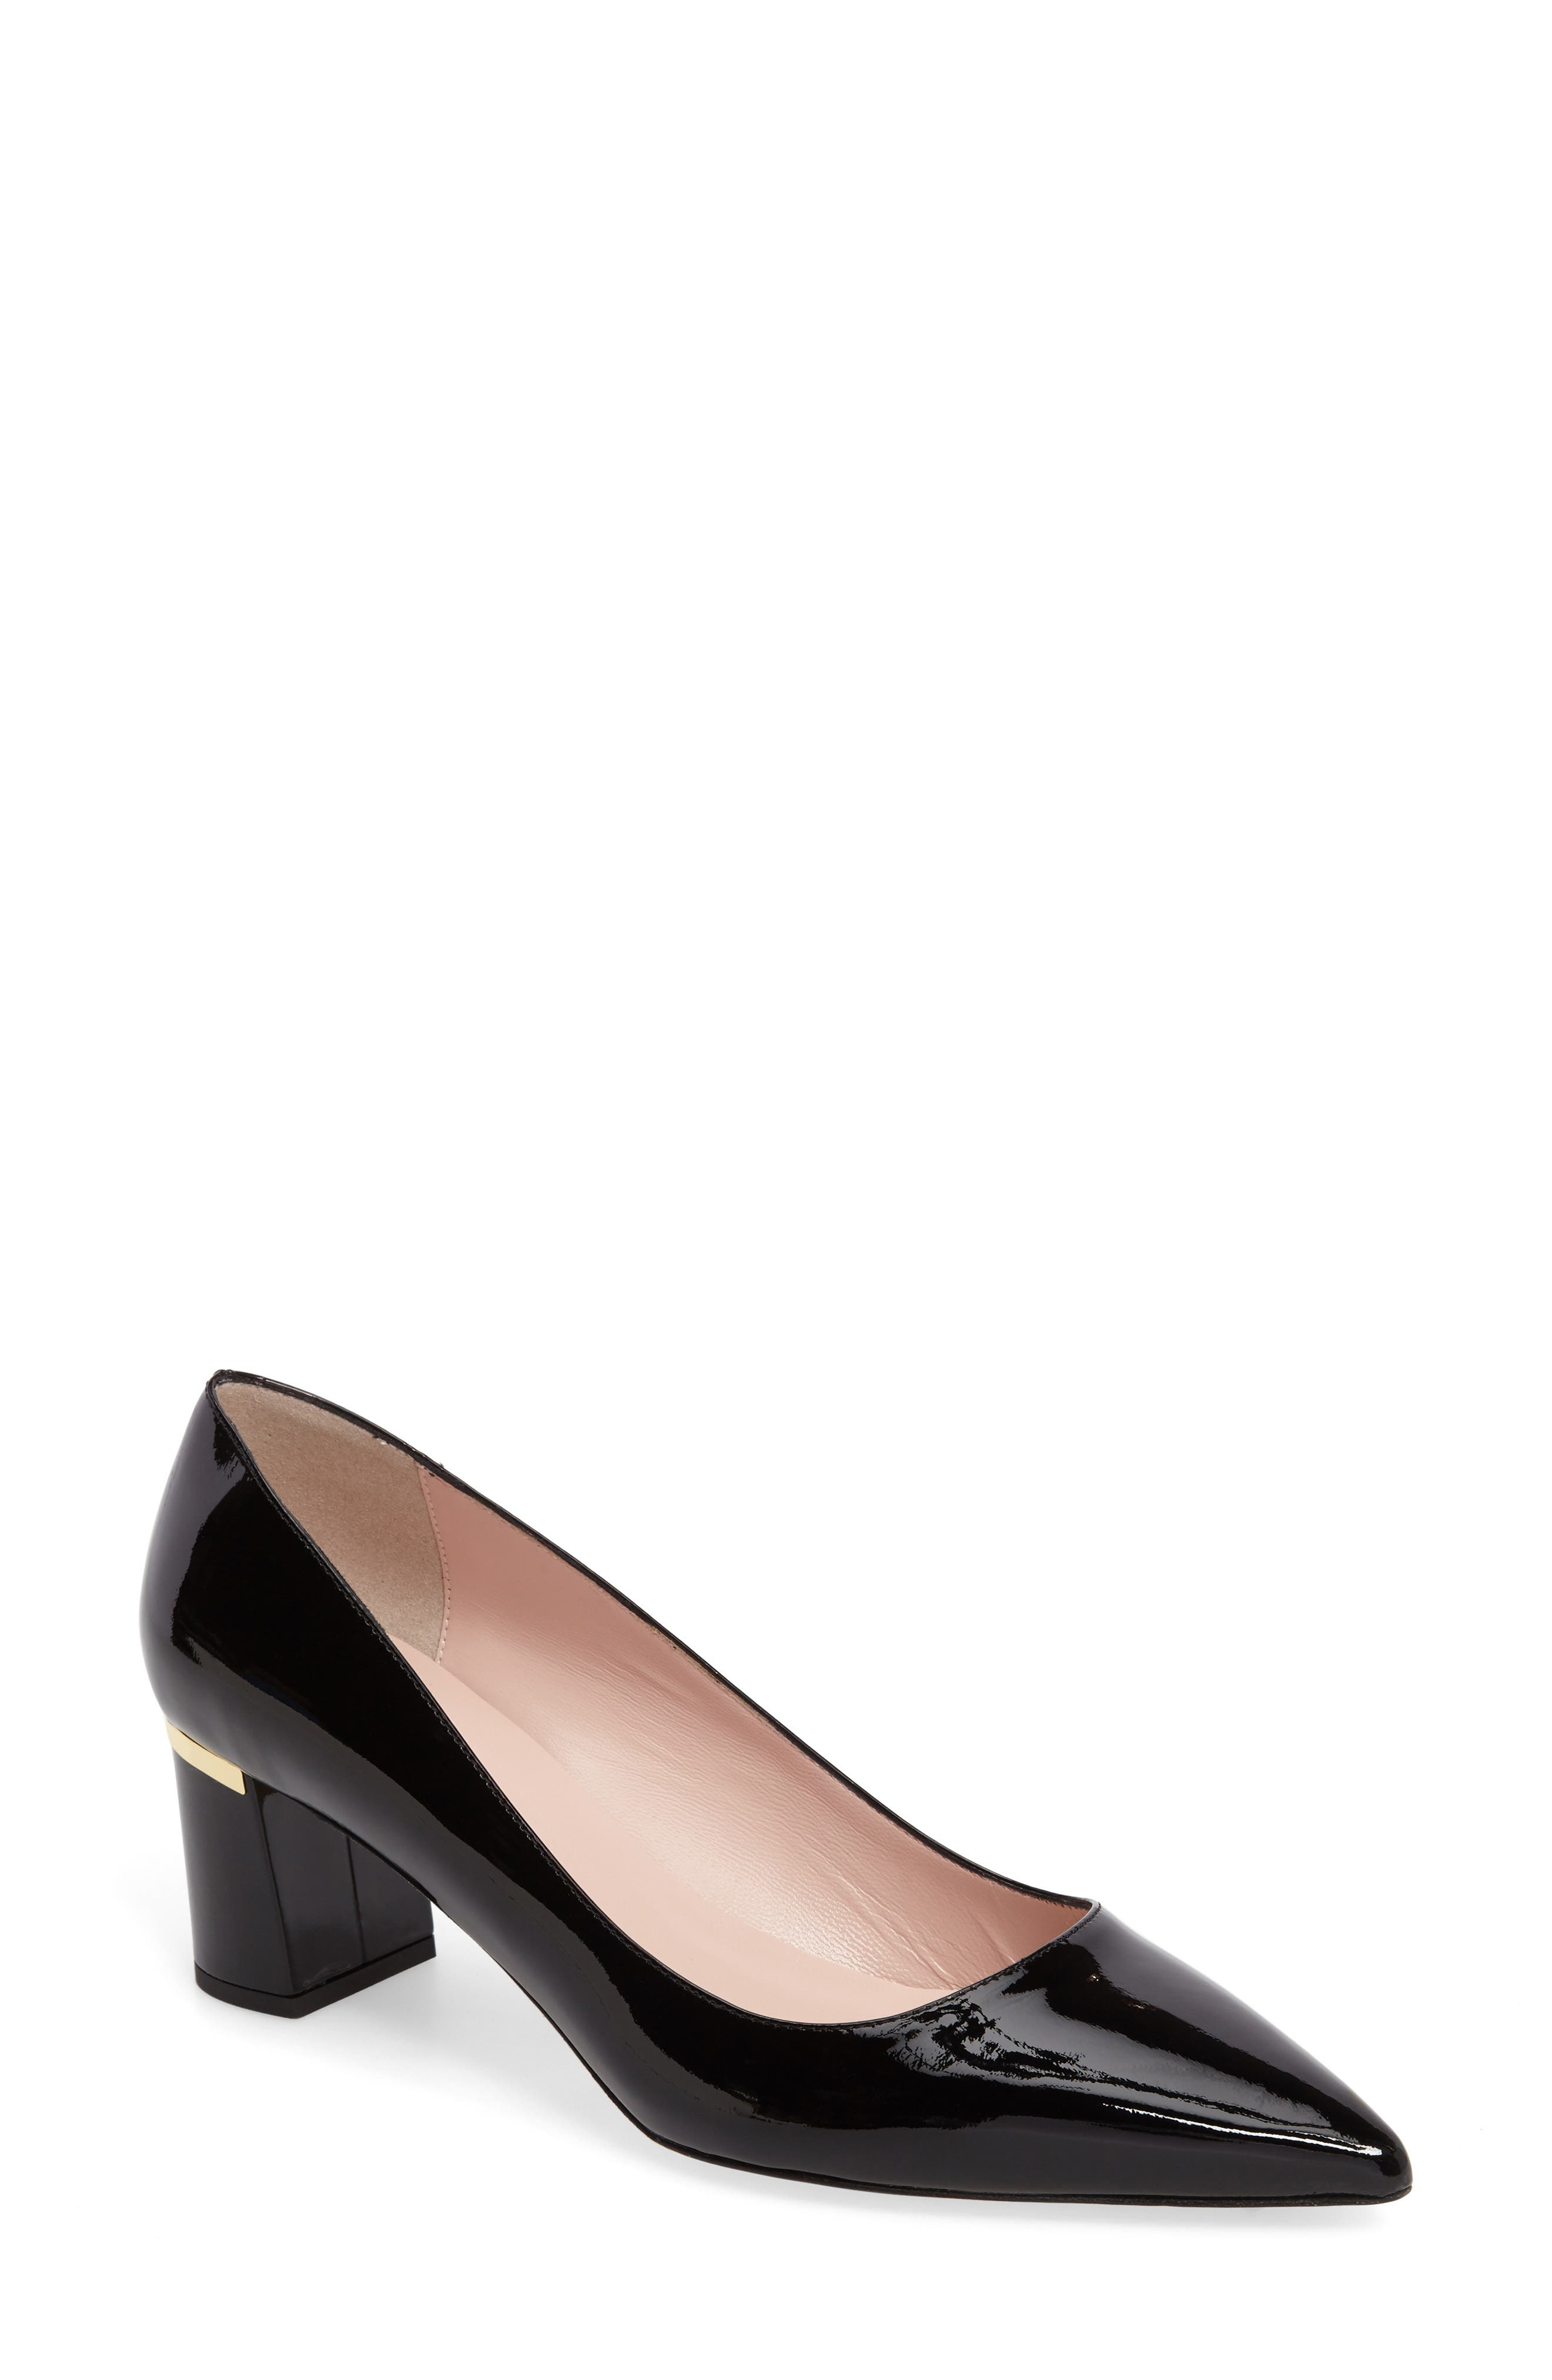 KATE SPADE NEW YORK milan pump